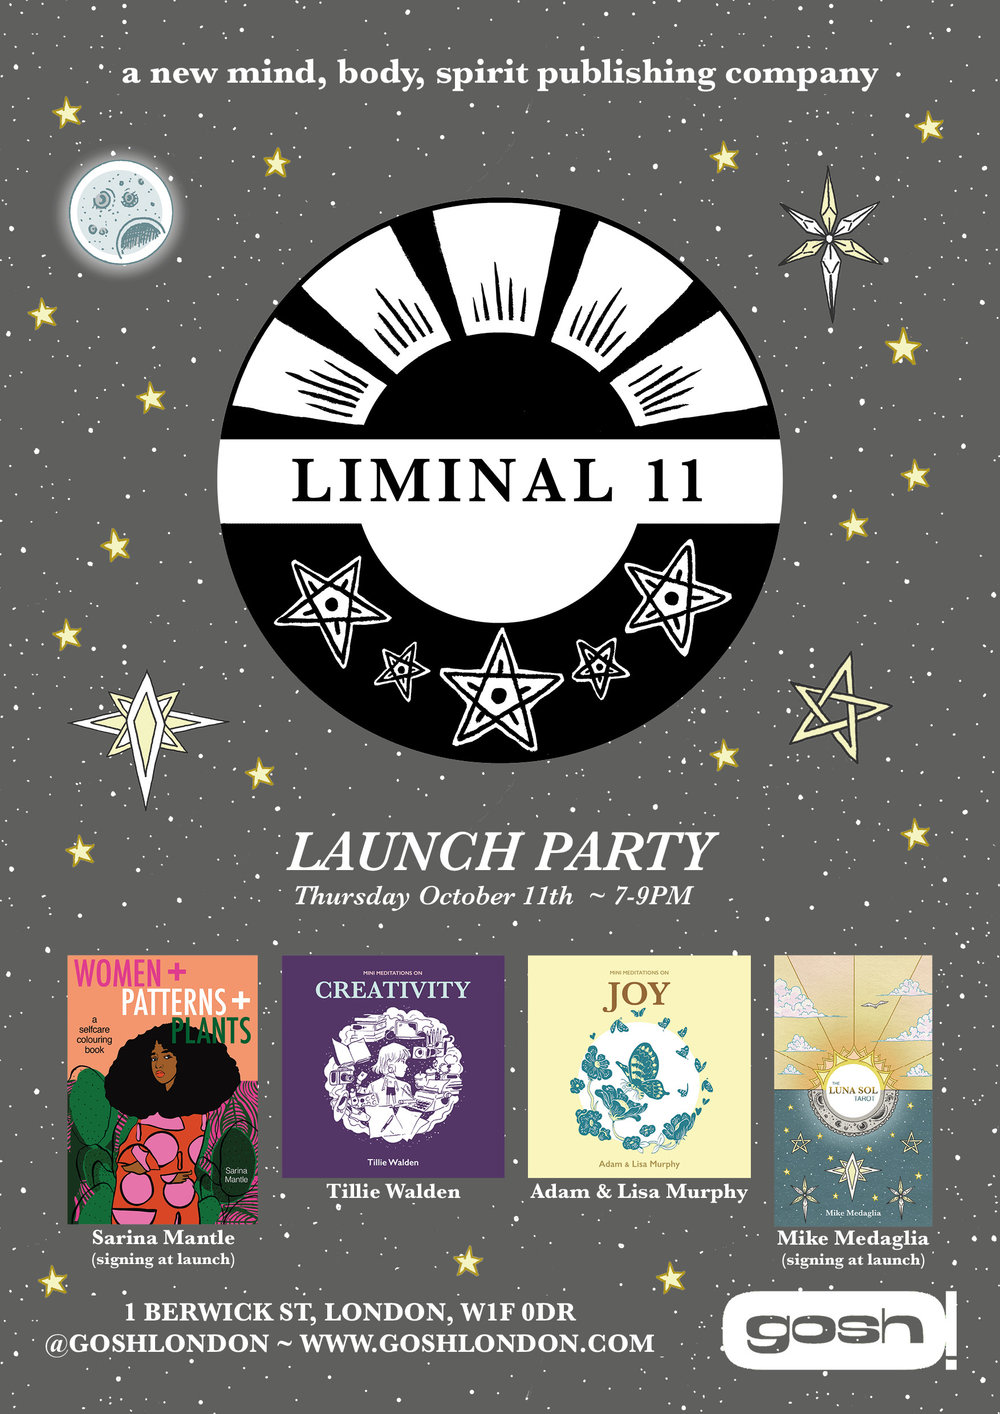 Come join me at my Publishers Liminal 11 Launch Party and get a signed copy of women + patterns + plants. I will be signing on the night alongside Publisher Mike Medaglia and his new Tarot Cards Luna Sol. There will be the first release of two new Mini meditation books Creativity and Joy by Tilly Walden and Adam & Lisa Murphy.  Liminall 11 is a brand new mind body soul publishing company and this night is set to be an incredible evening.... Come join us at ....  Gosh Comics: 1 berwick St, London, W1F 0DR, 7-9pm, October 11th 2018.